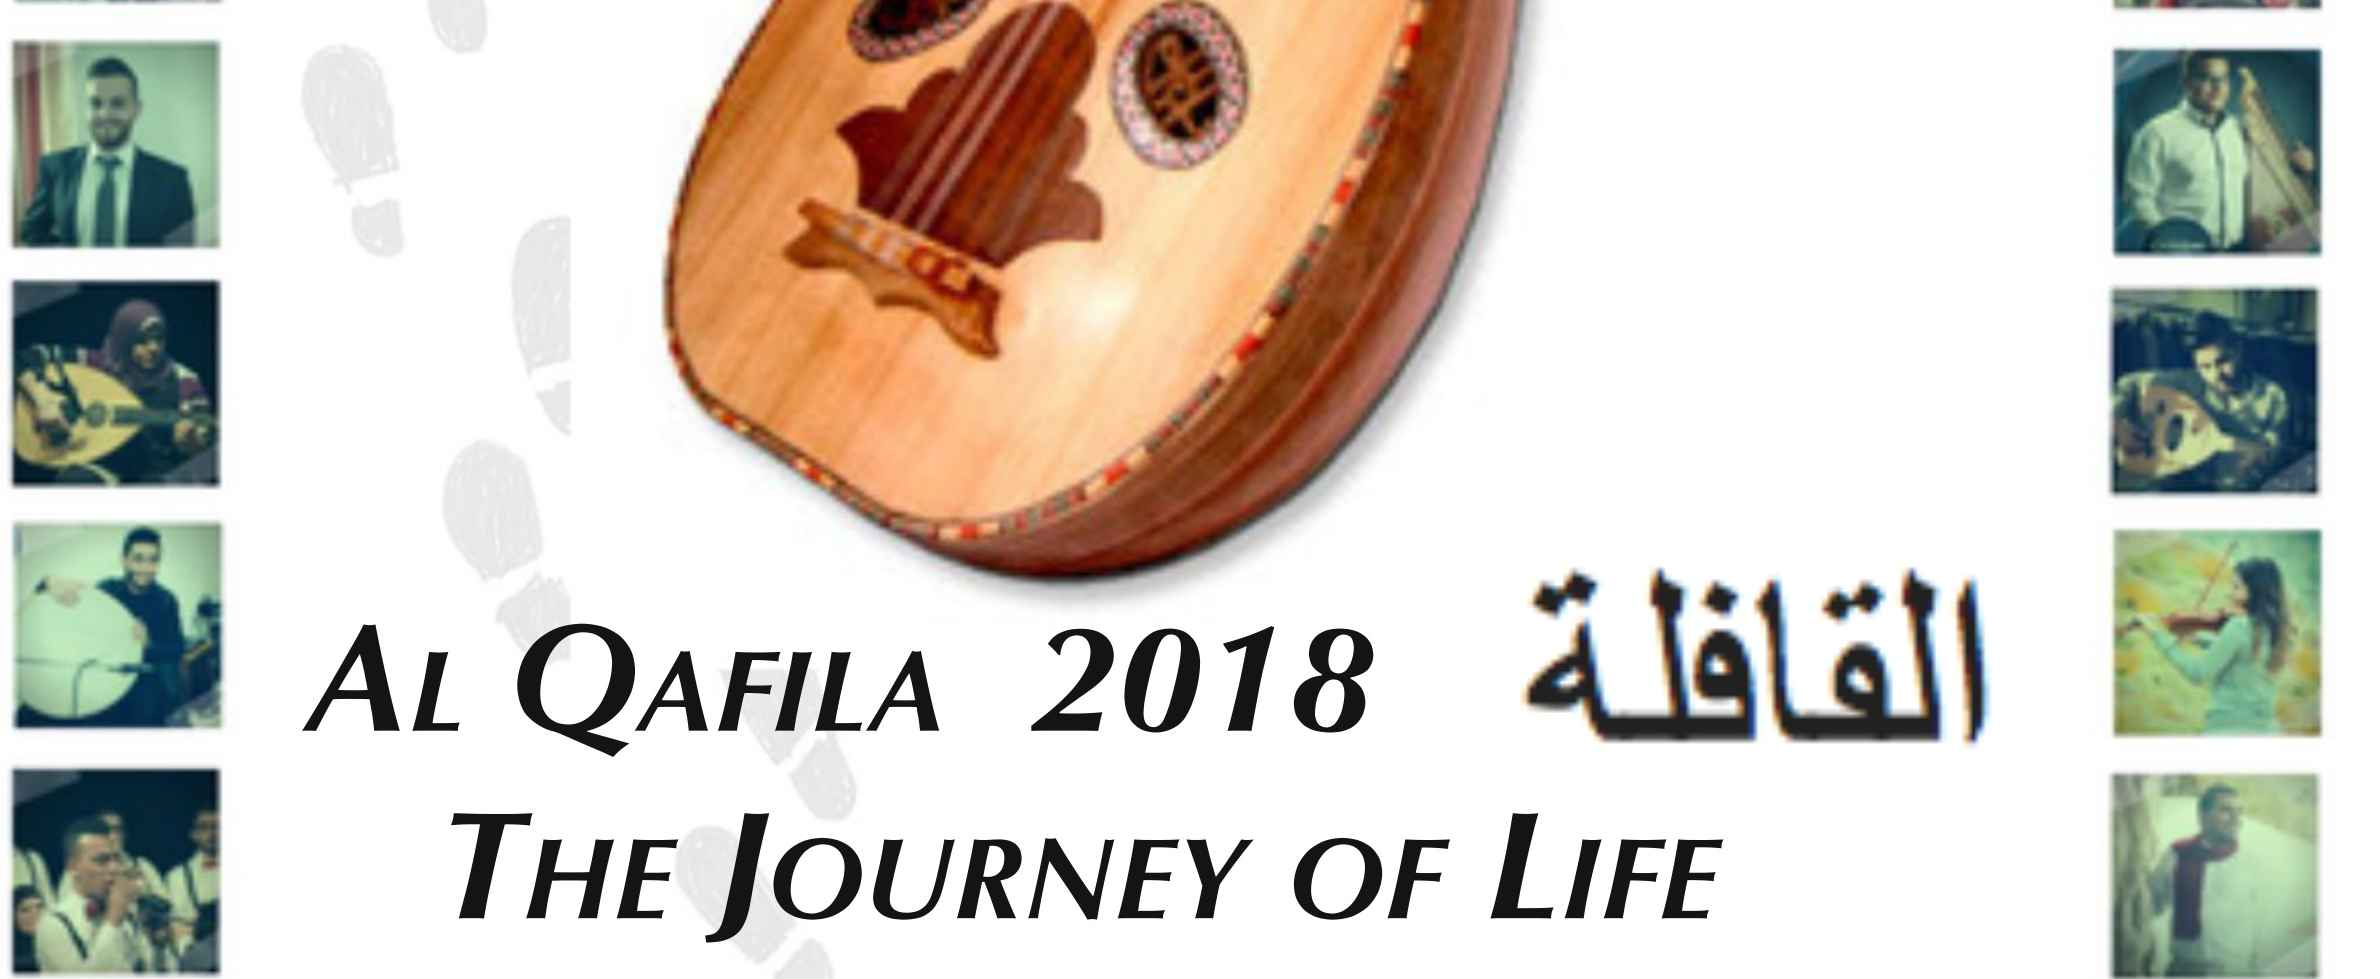 Al Qafila 2018: Concert in Berlin June 29th 2018